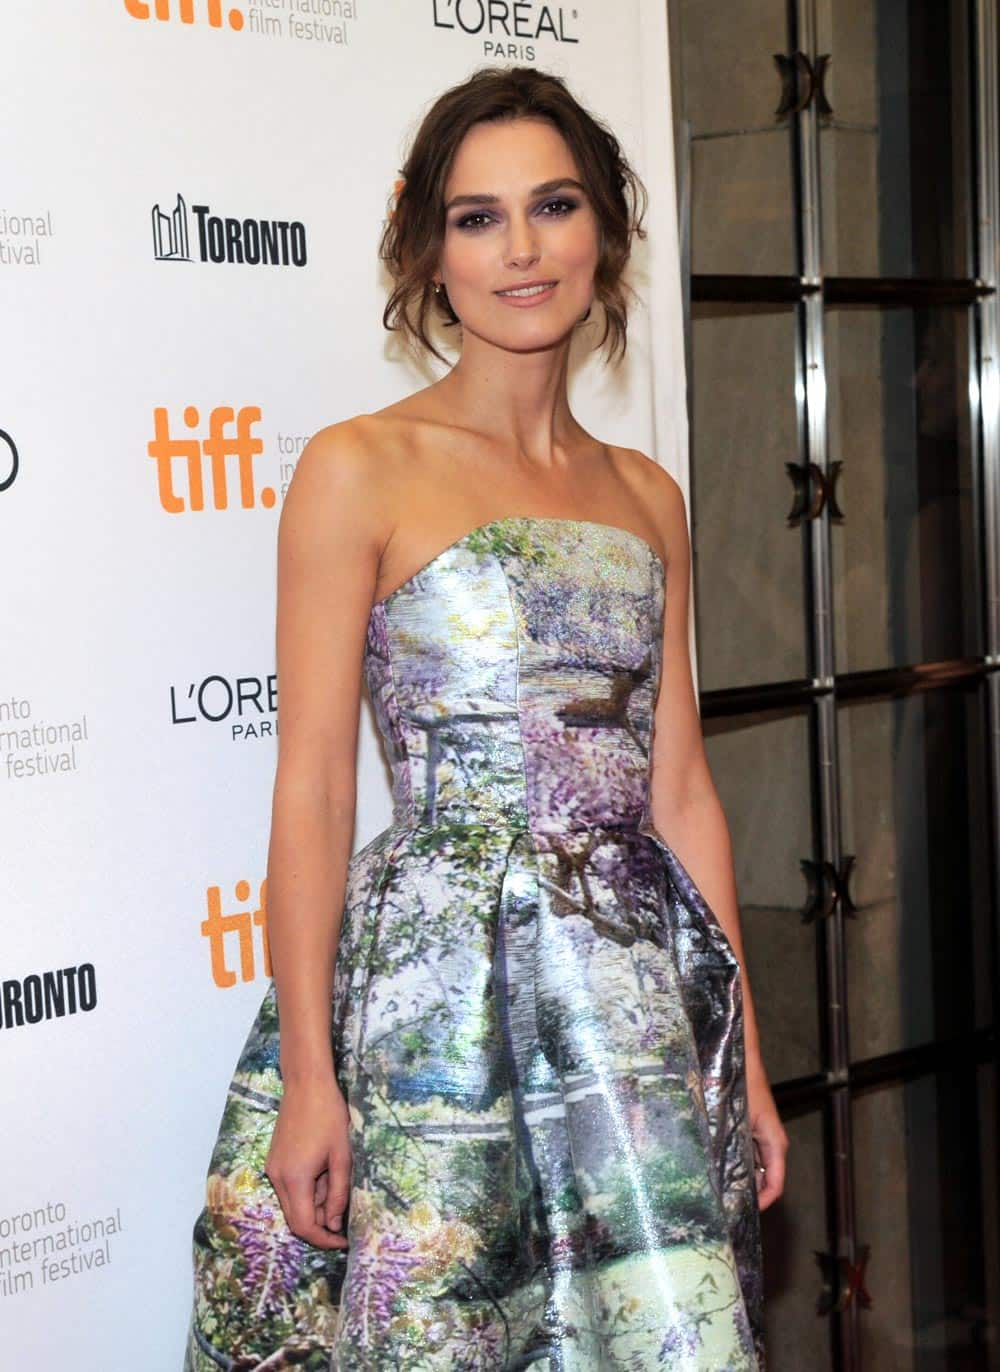 Keira Knightley arrives at the premiere of